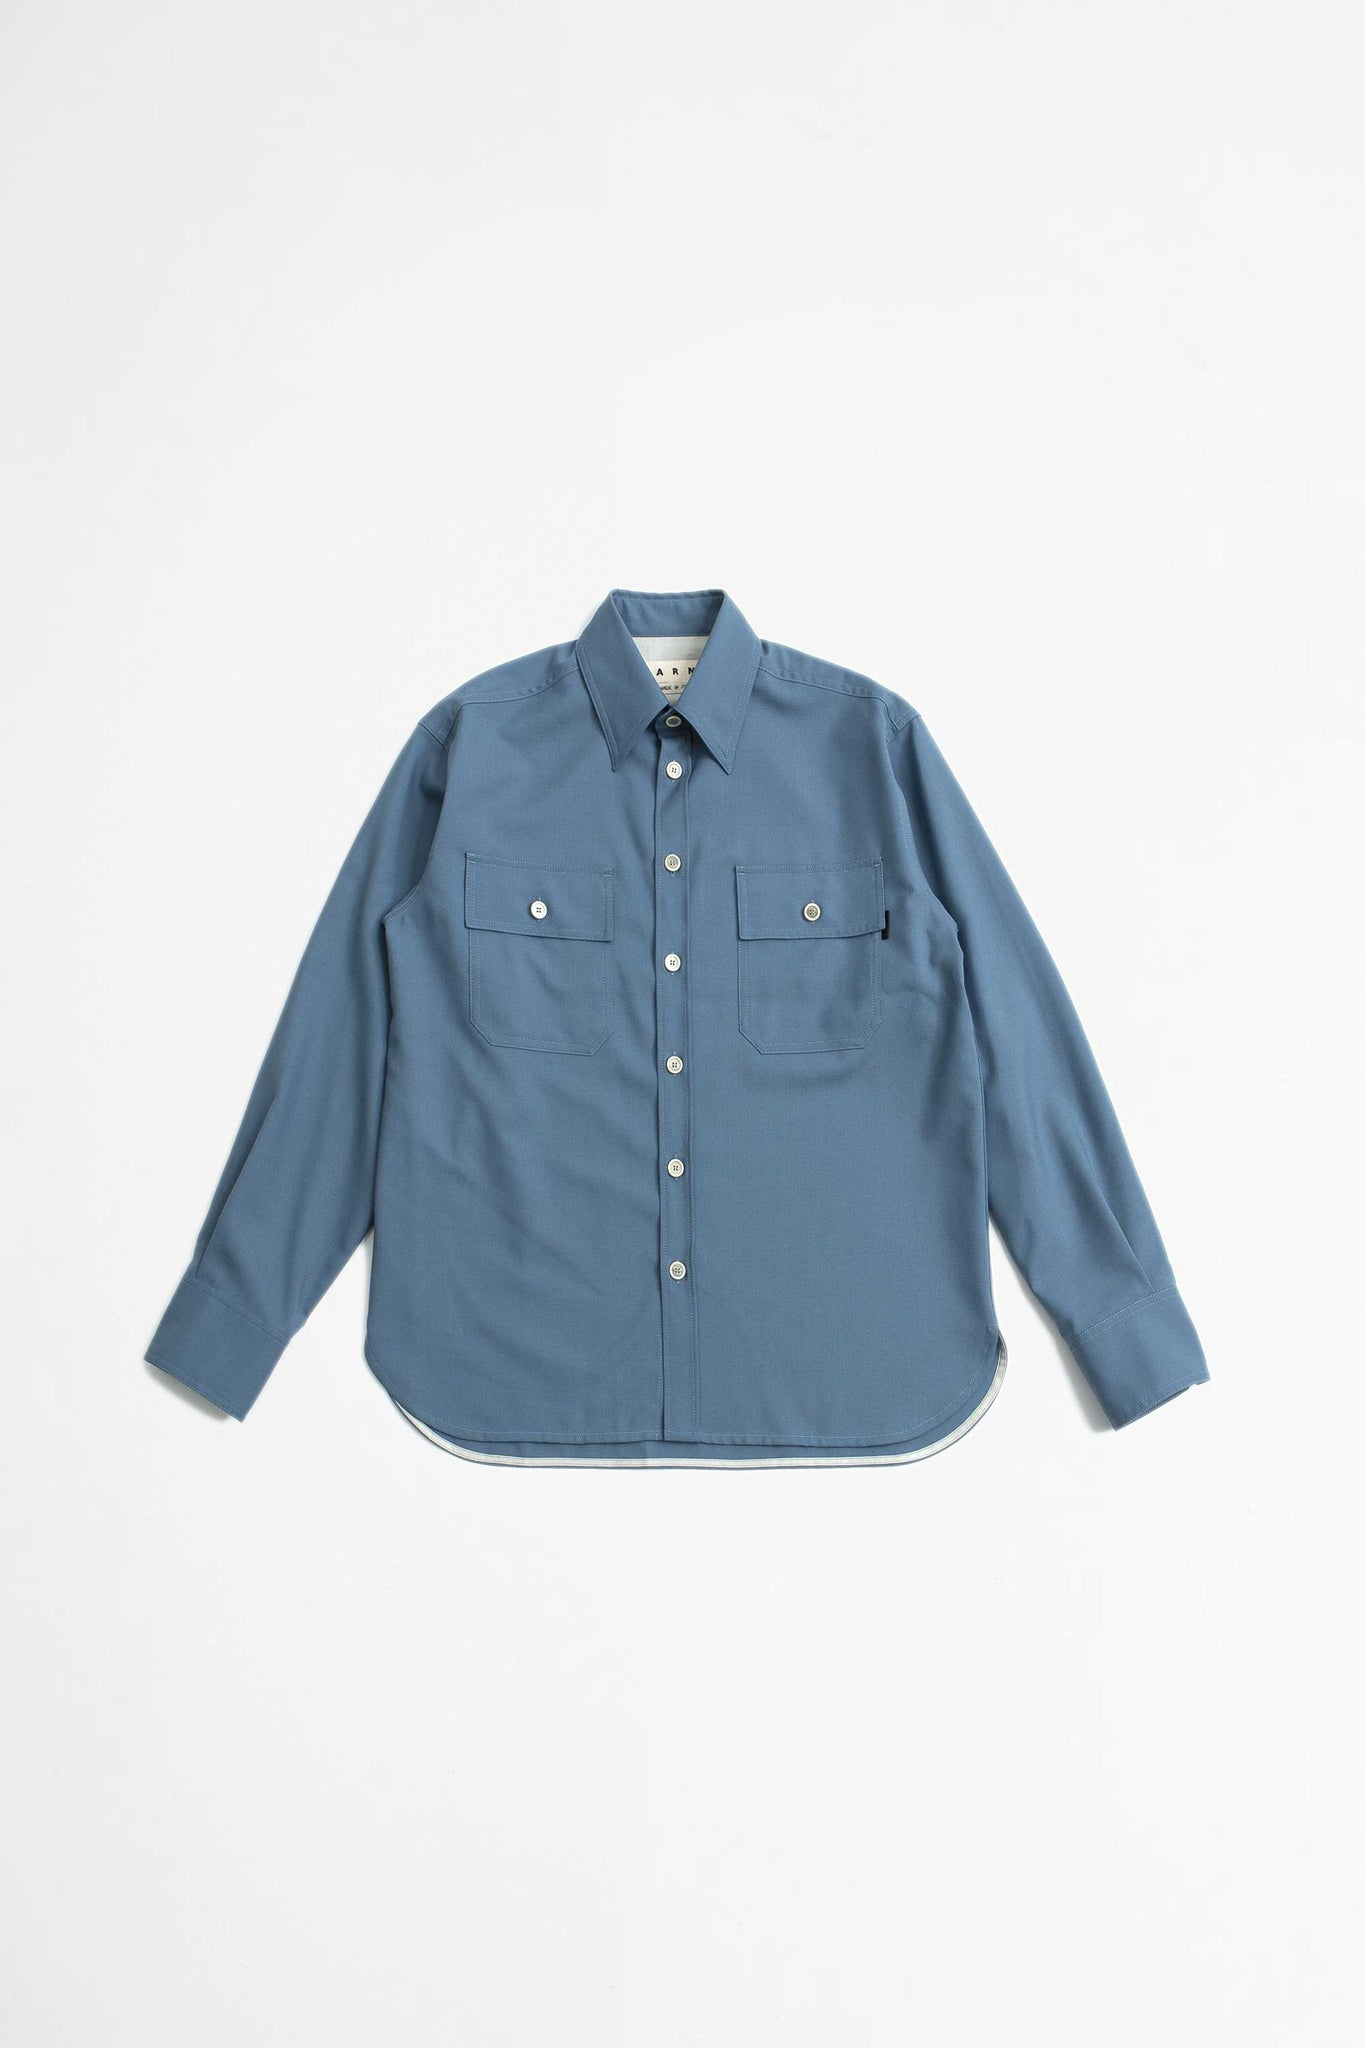 2-Pocket shirt blue